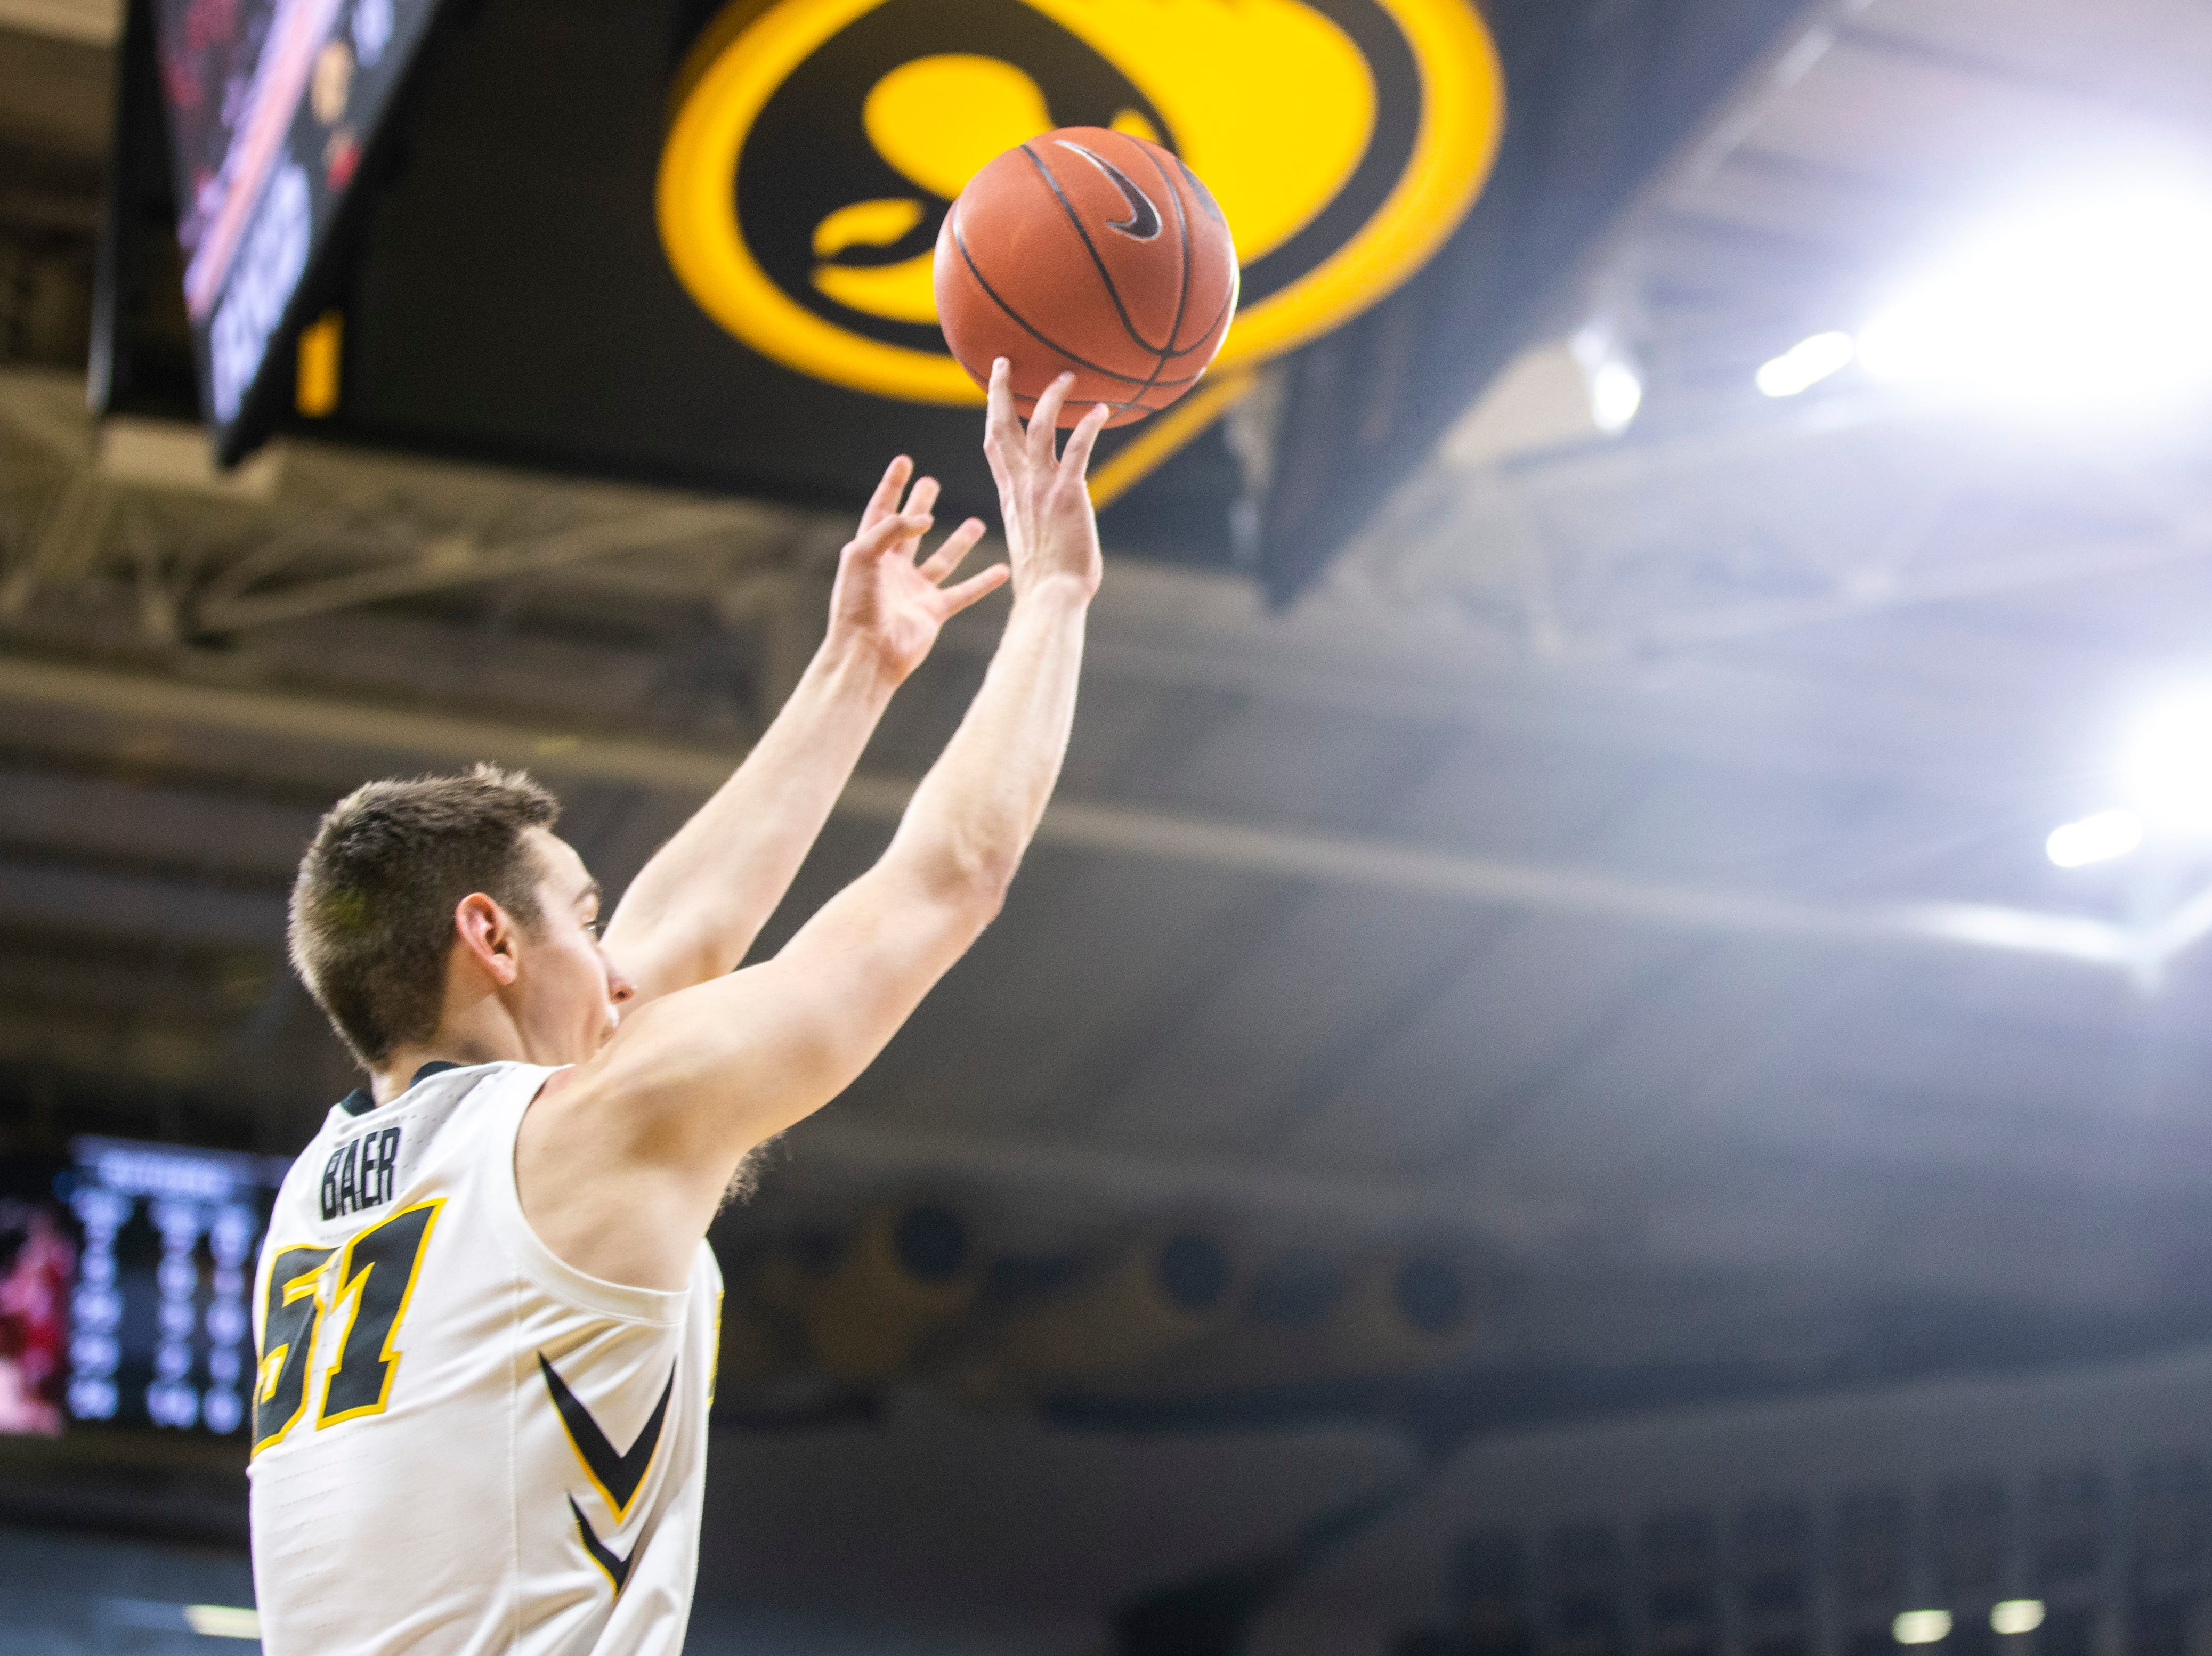 Iowa forward Nicholas Baer (51) shoots a basket during a NCAA Big Ten Conference men's basketball game on Saturday, March 2, 2019, at Carver-Hawkeye Arena in Iowa City, Iowa.